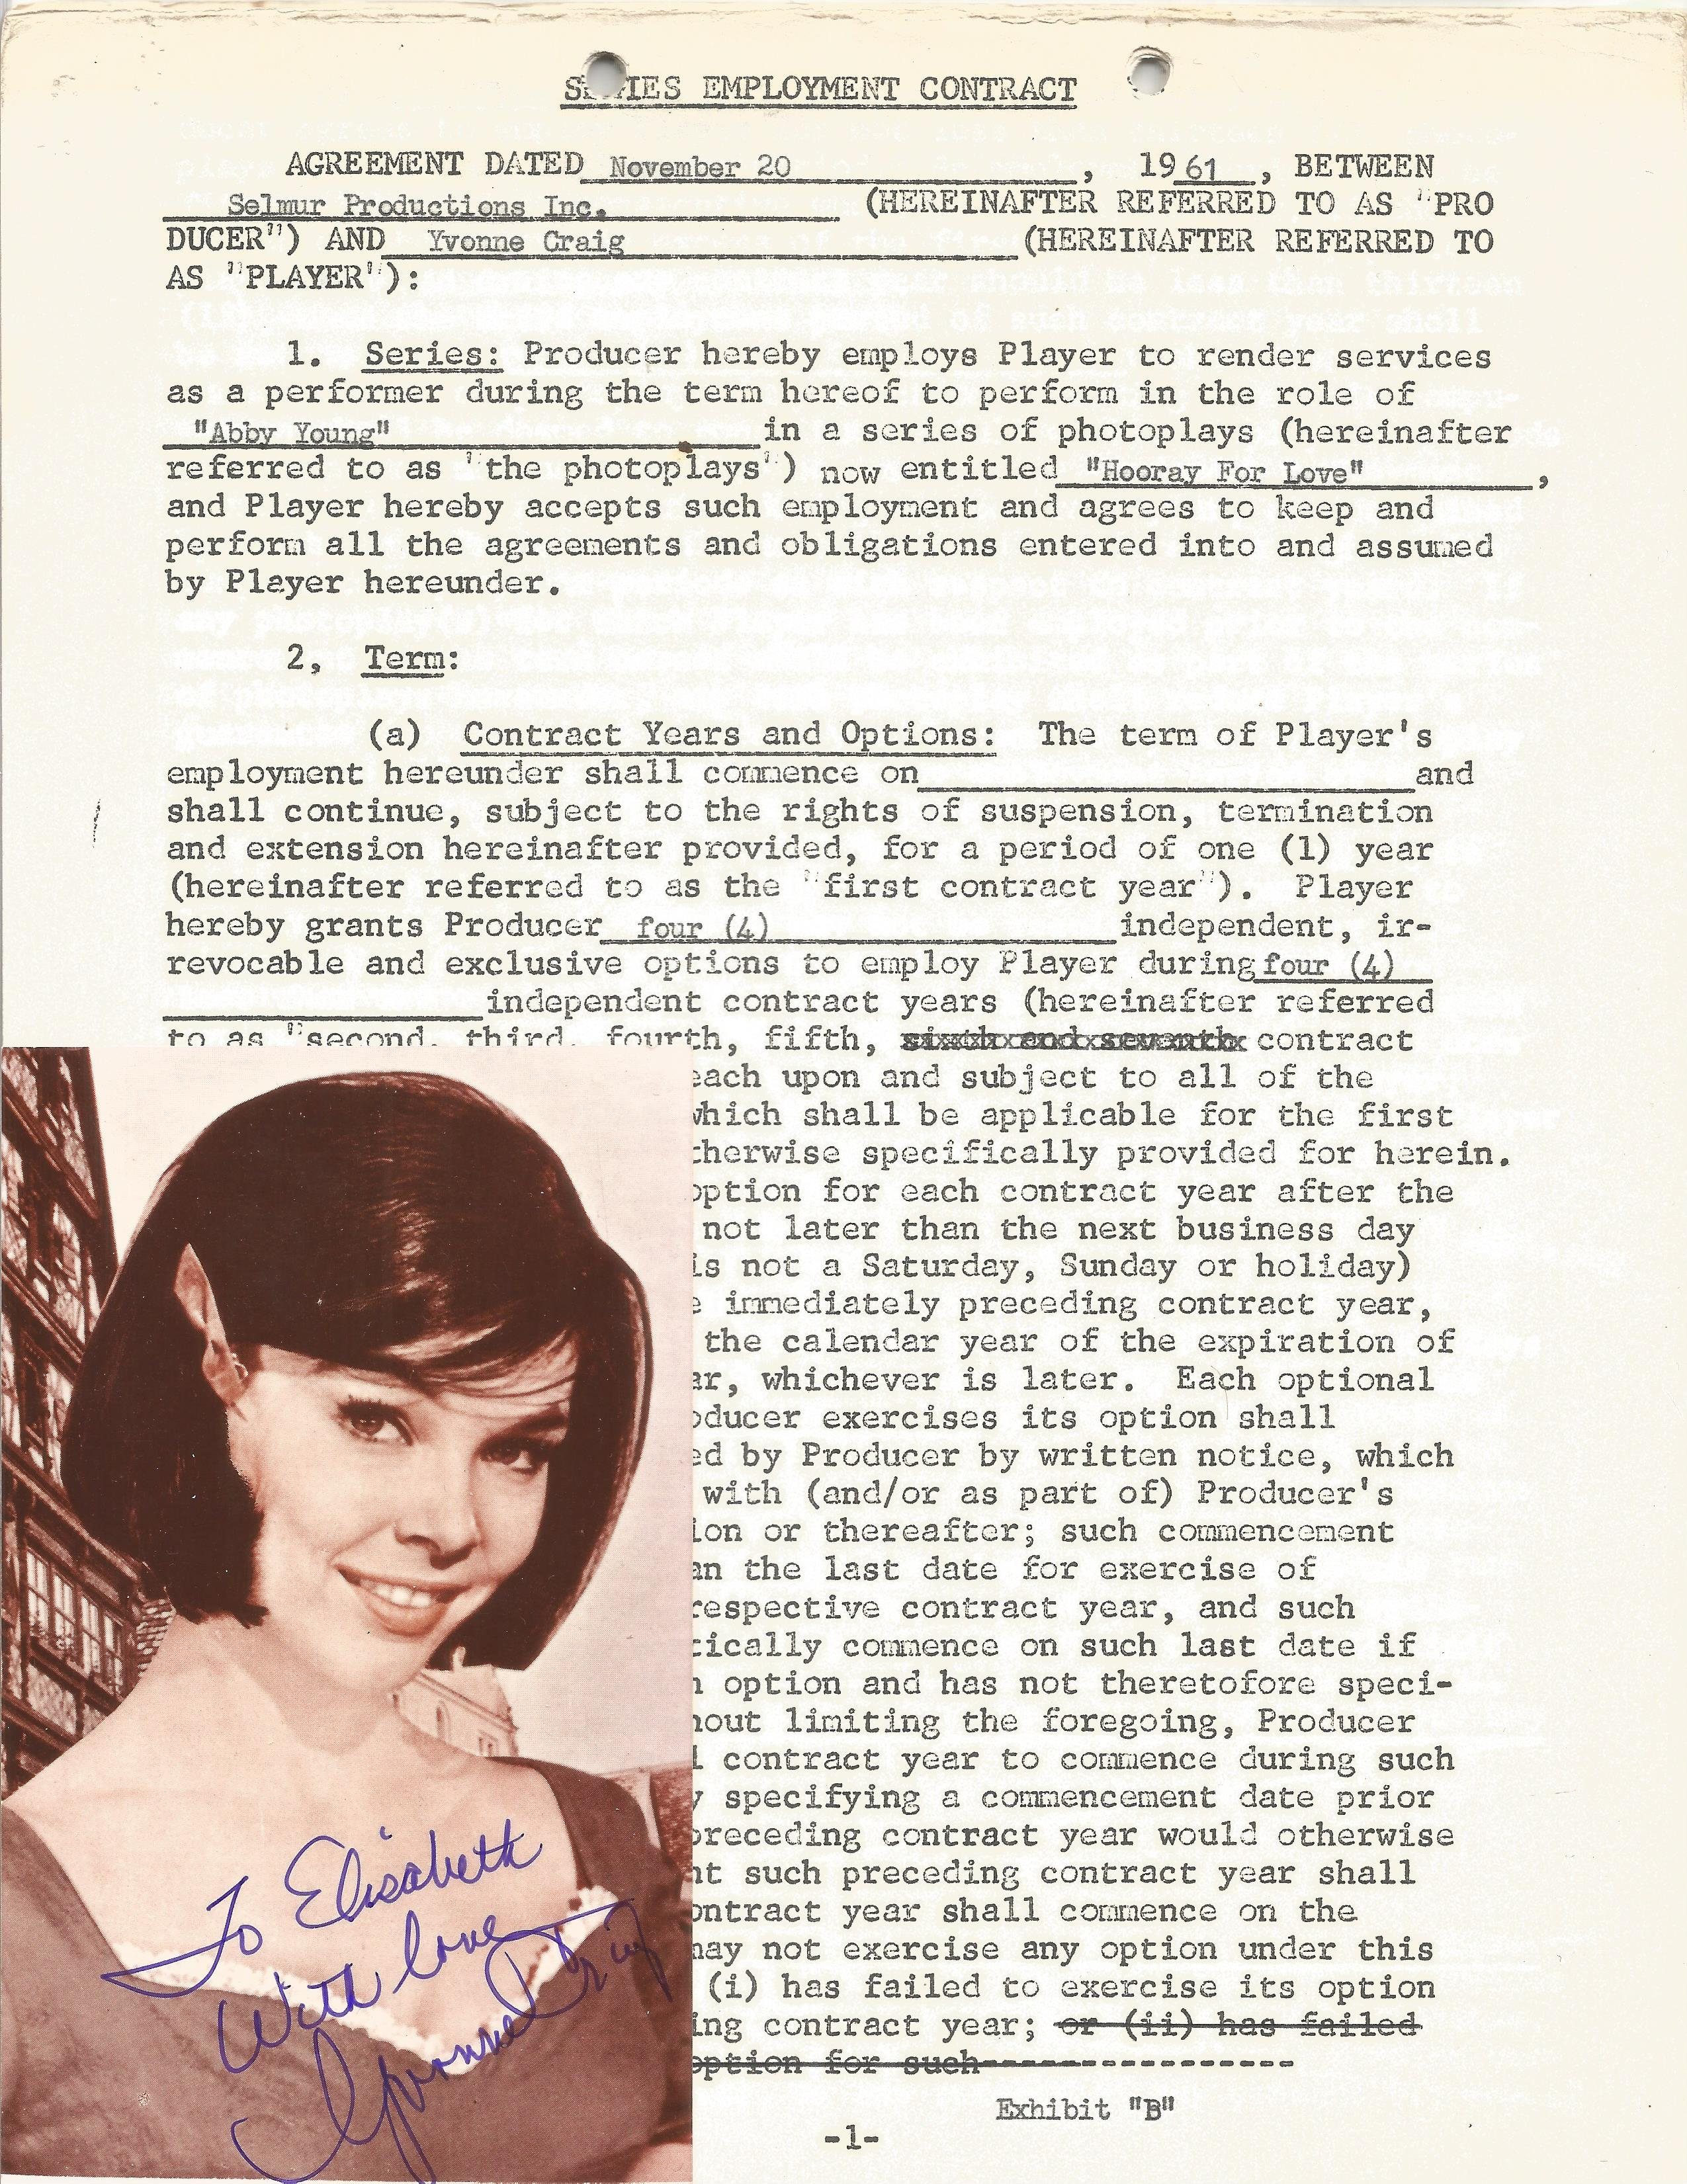 A Yvonne Craig employment contract from the film HOORAY FOR LOVE as the character ABBY YOUNG on